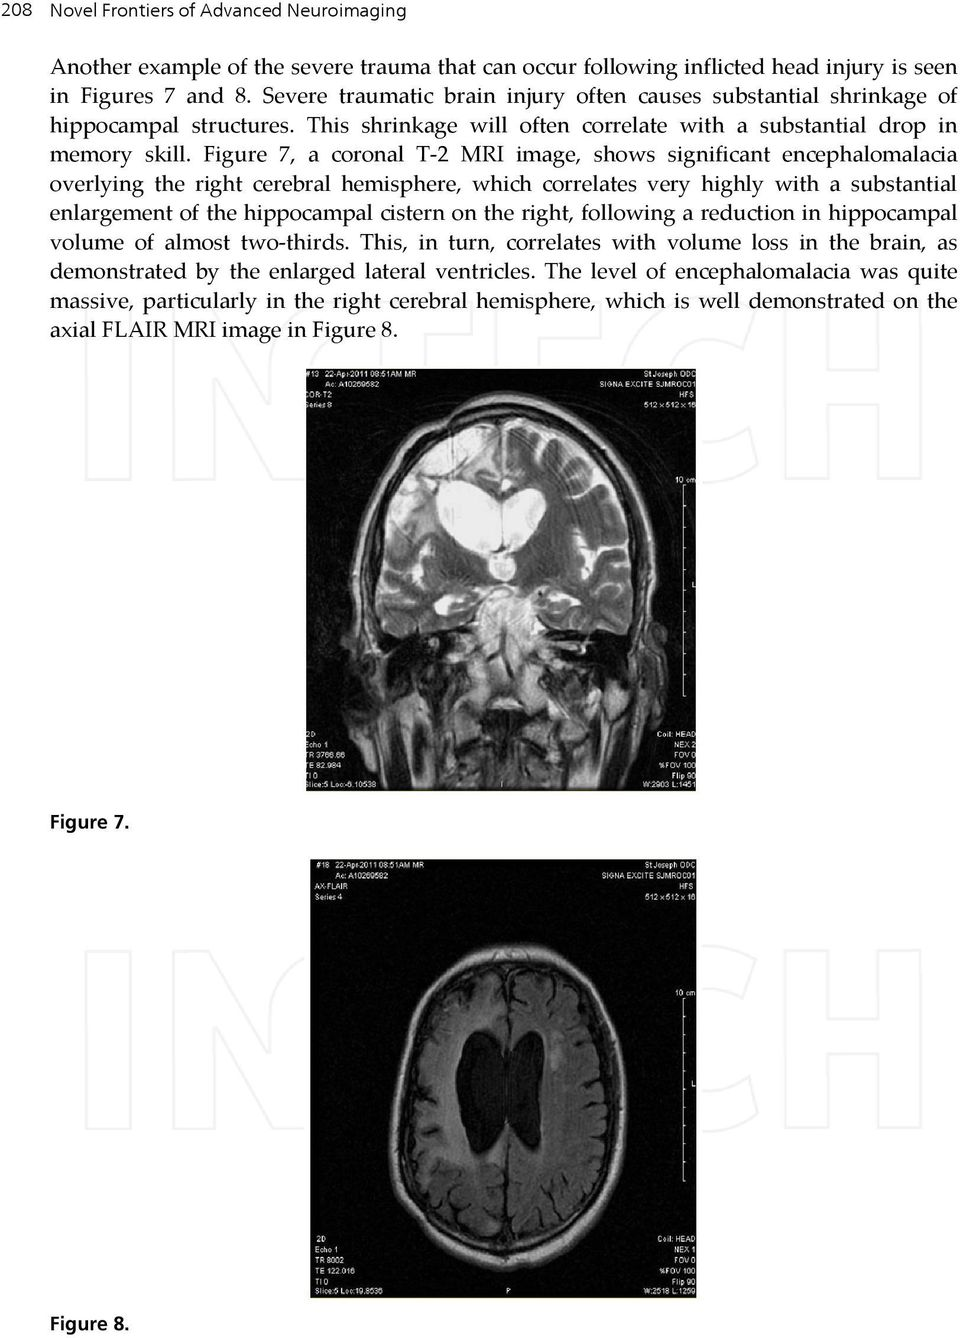 Figure 7, a coronal T-2 MRI image, shows significant encephalomalacia overlying the right cerebral hemisphere, which correlates very highly with a substantial enlargement of the hippocampal cistern